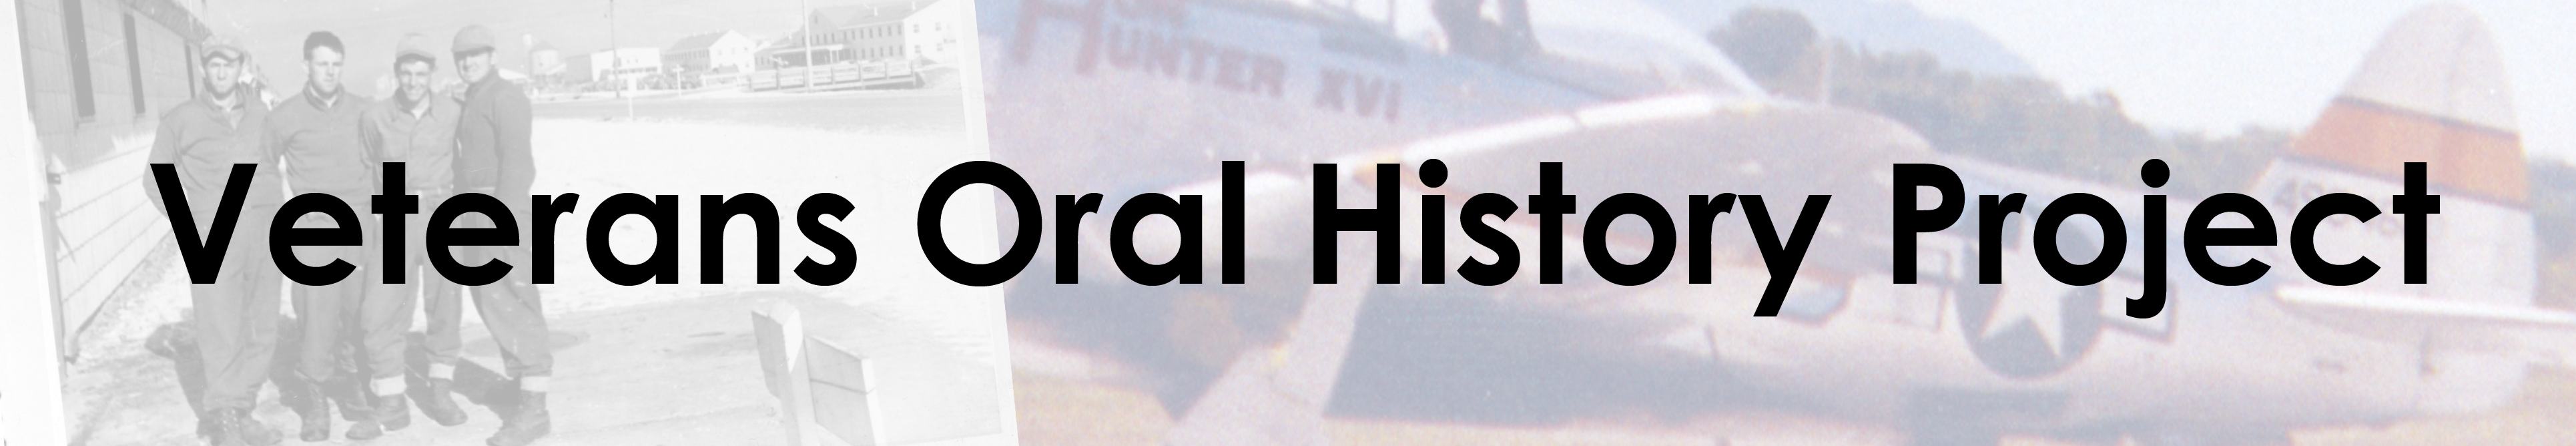 Veterans Oral History Project